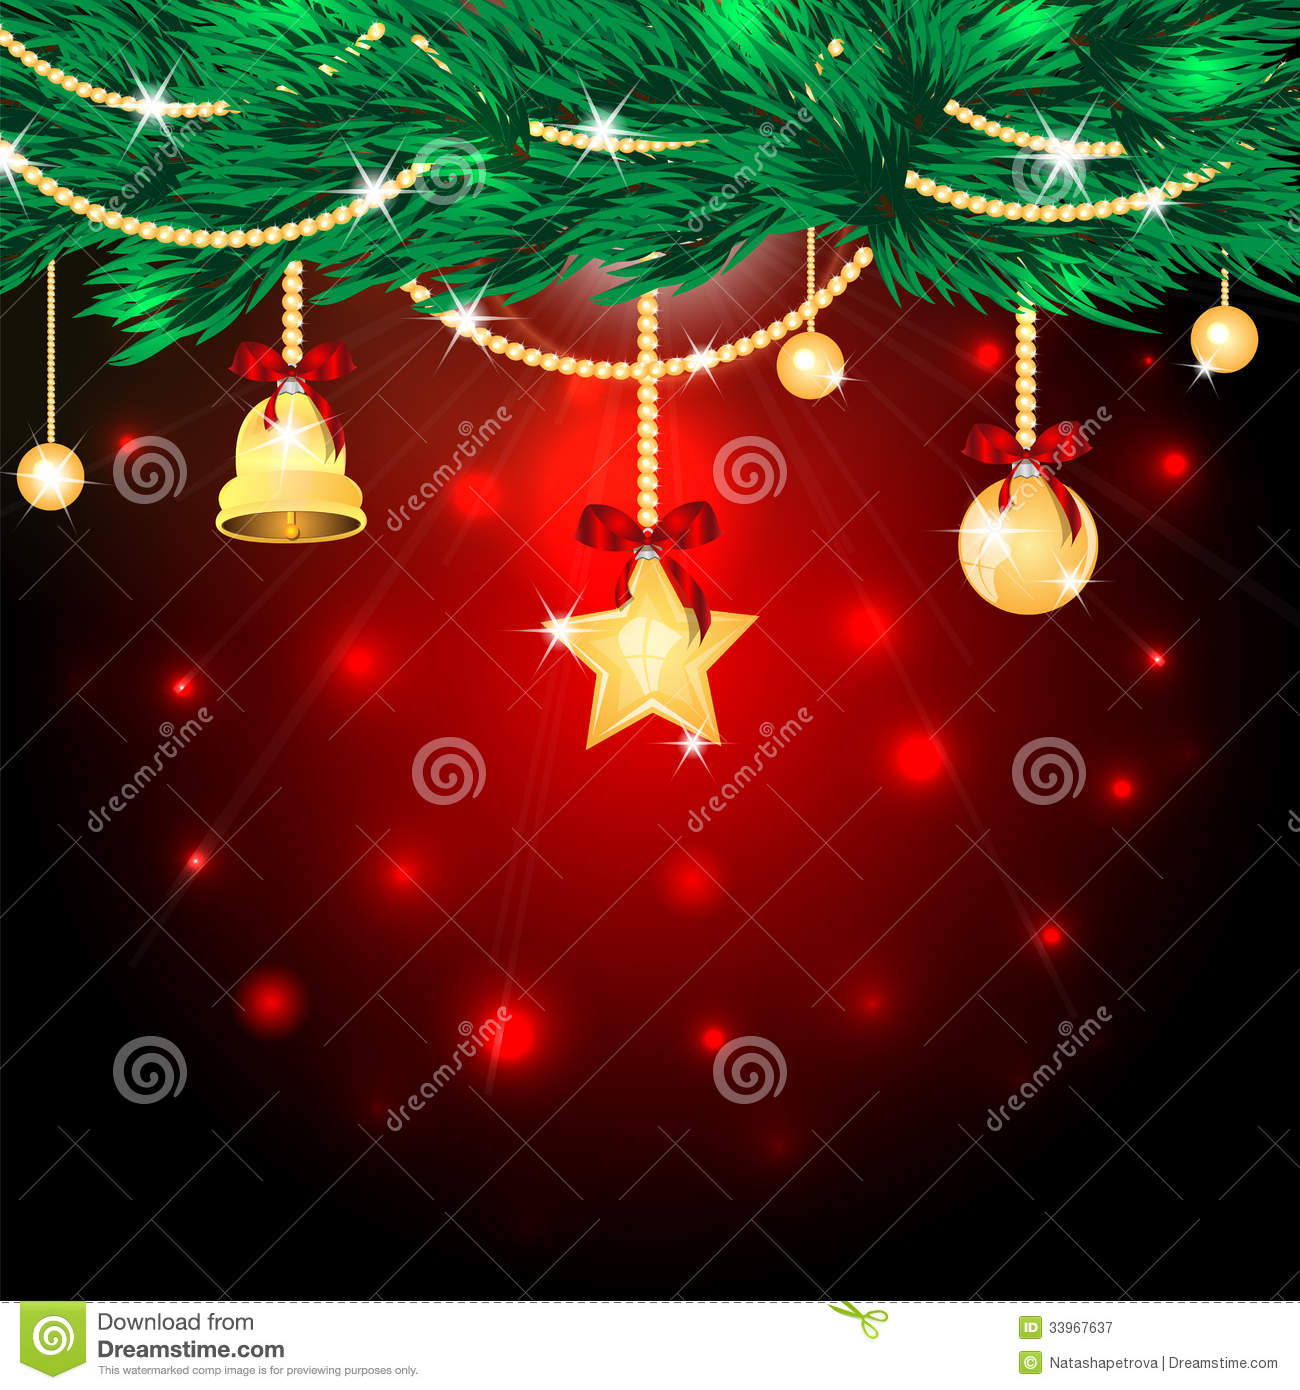 Tree decorations on a red background flickering gold christmas tree